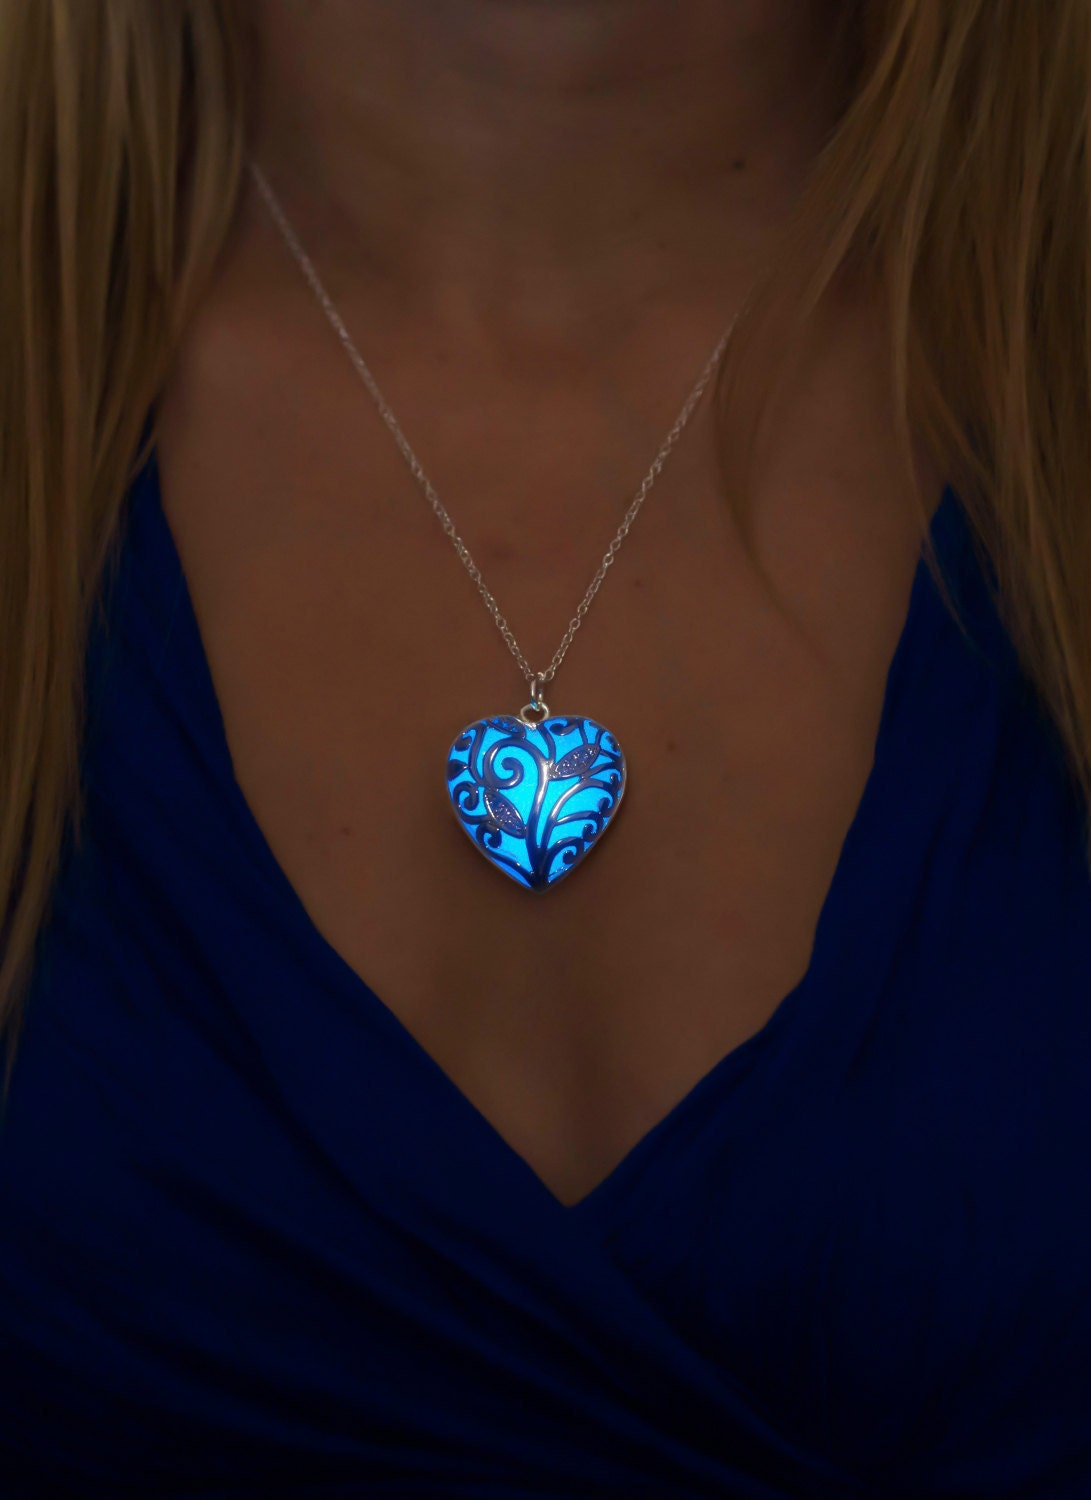 blue glow necklace blue jewelry blue necklace gift for